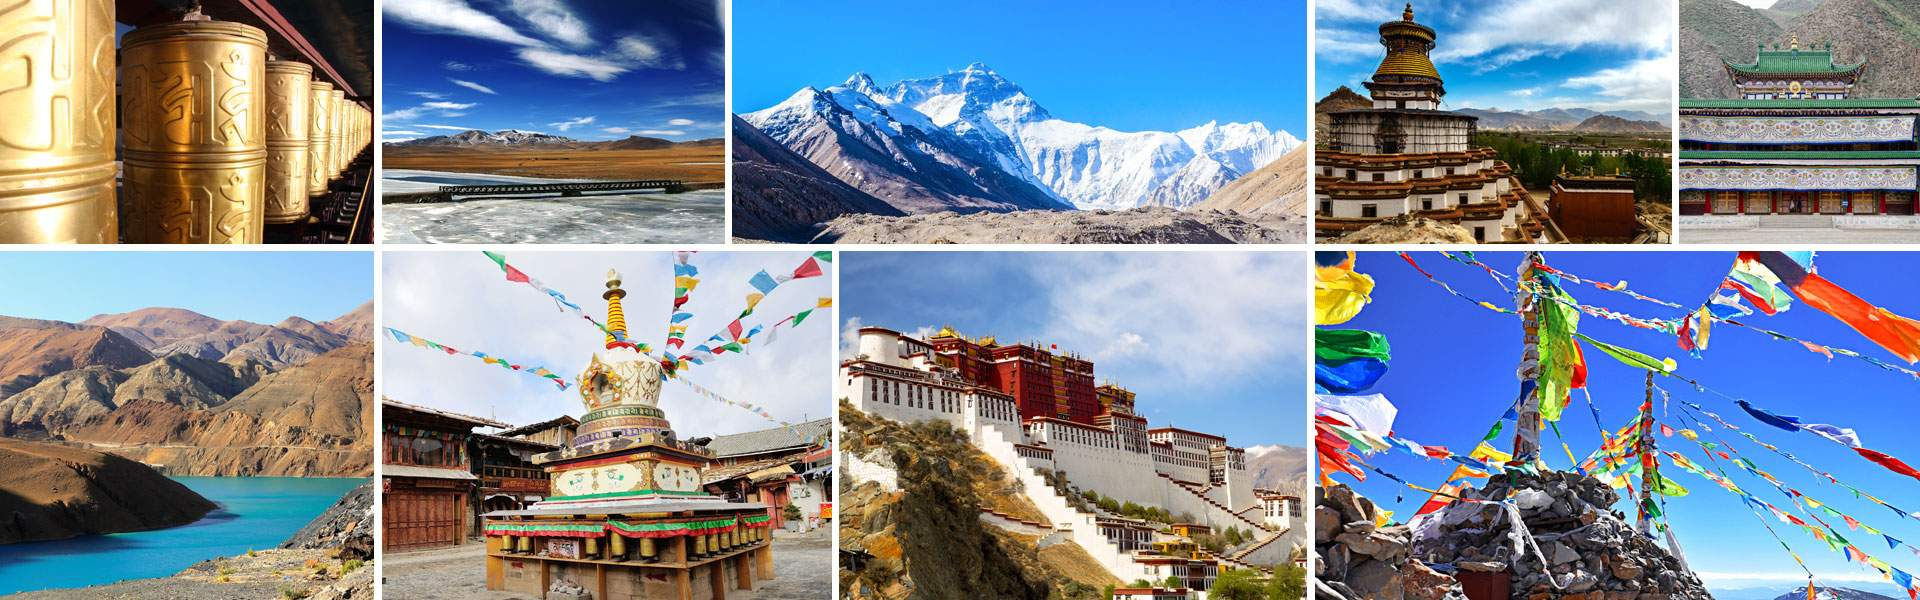 Wendy Wu Tours Tibet Holidays